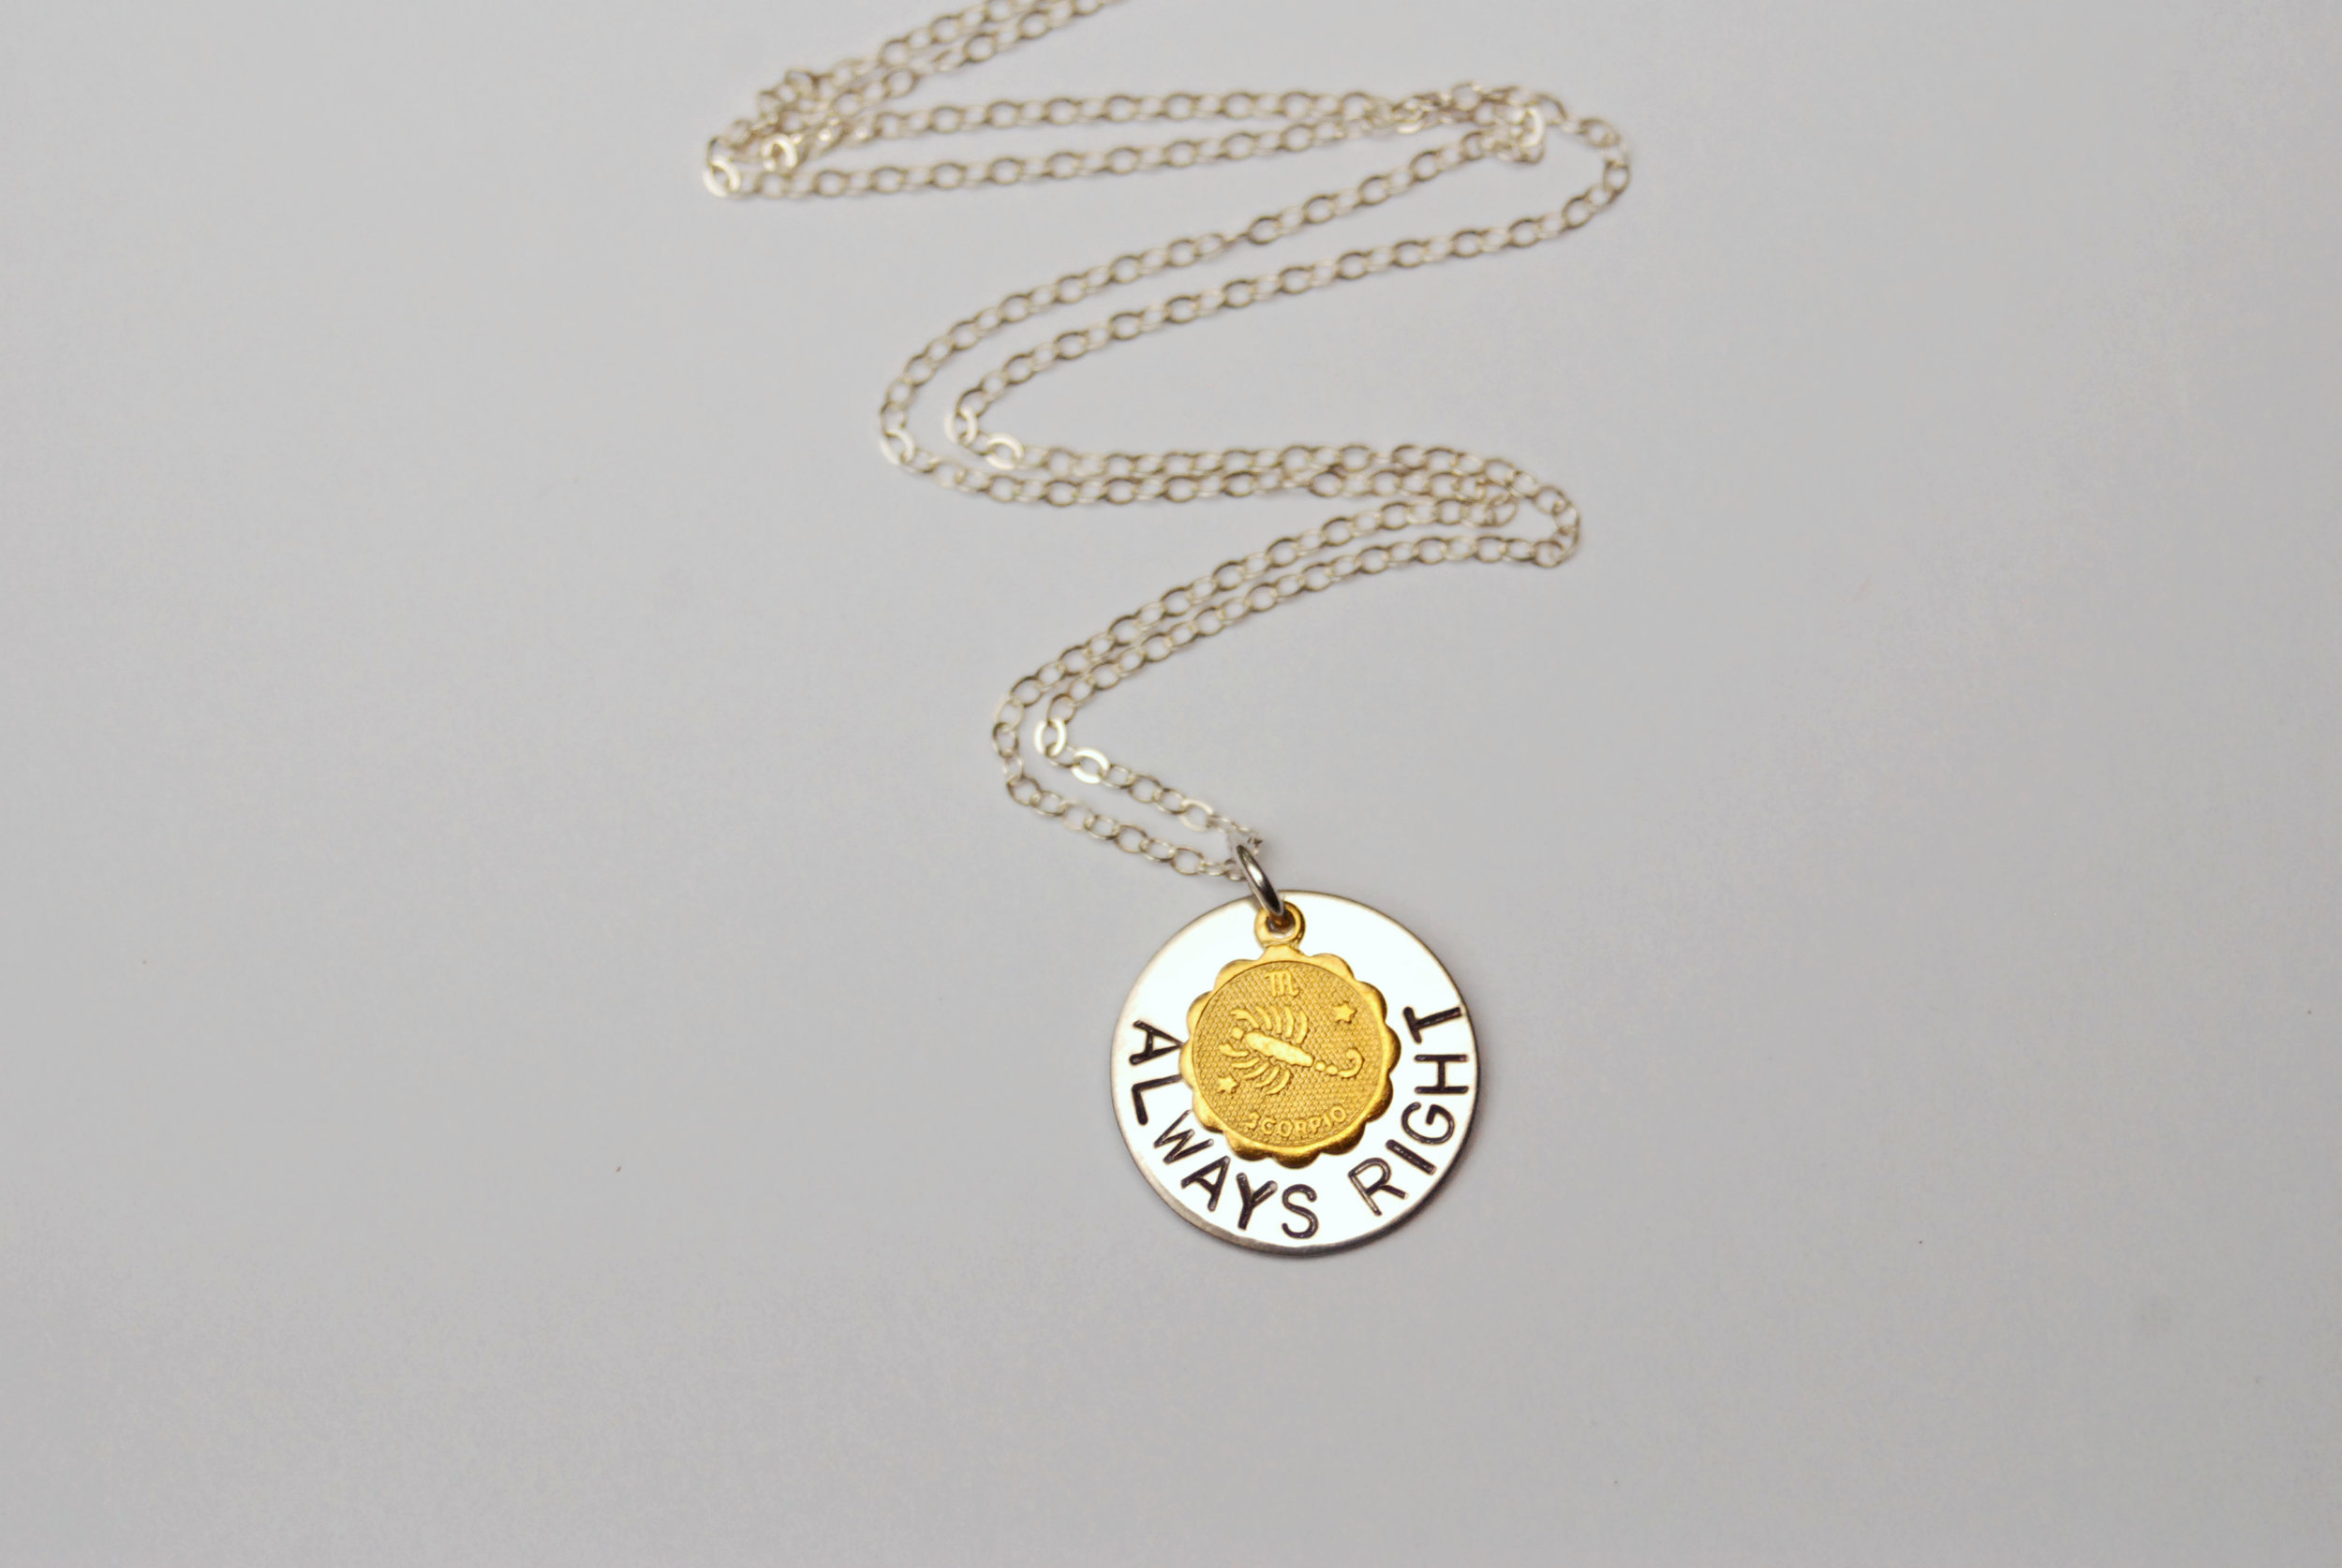 Scorpios are known to be loyal, passionate friends, but don't accuse them of being wrong. Click here to see the entire  zodiac necklace collection .